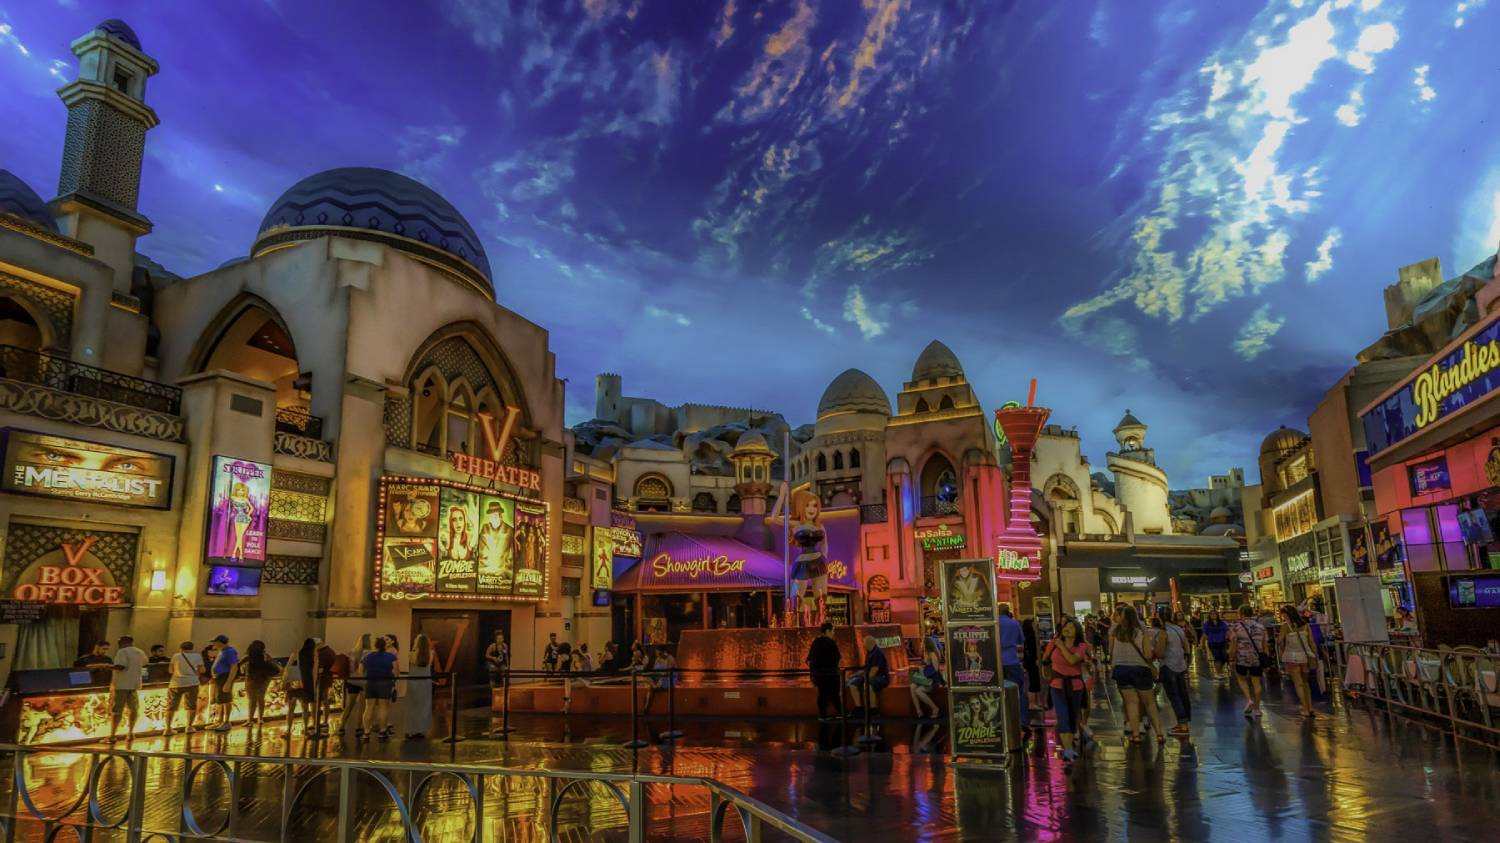 V Theater - Things To Do In Las Vegas